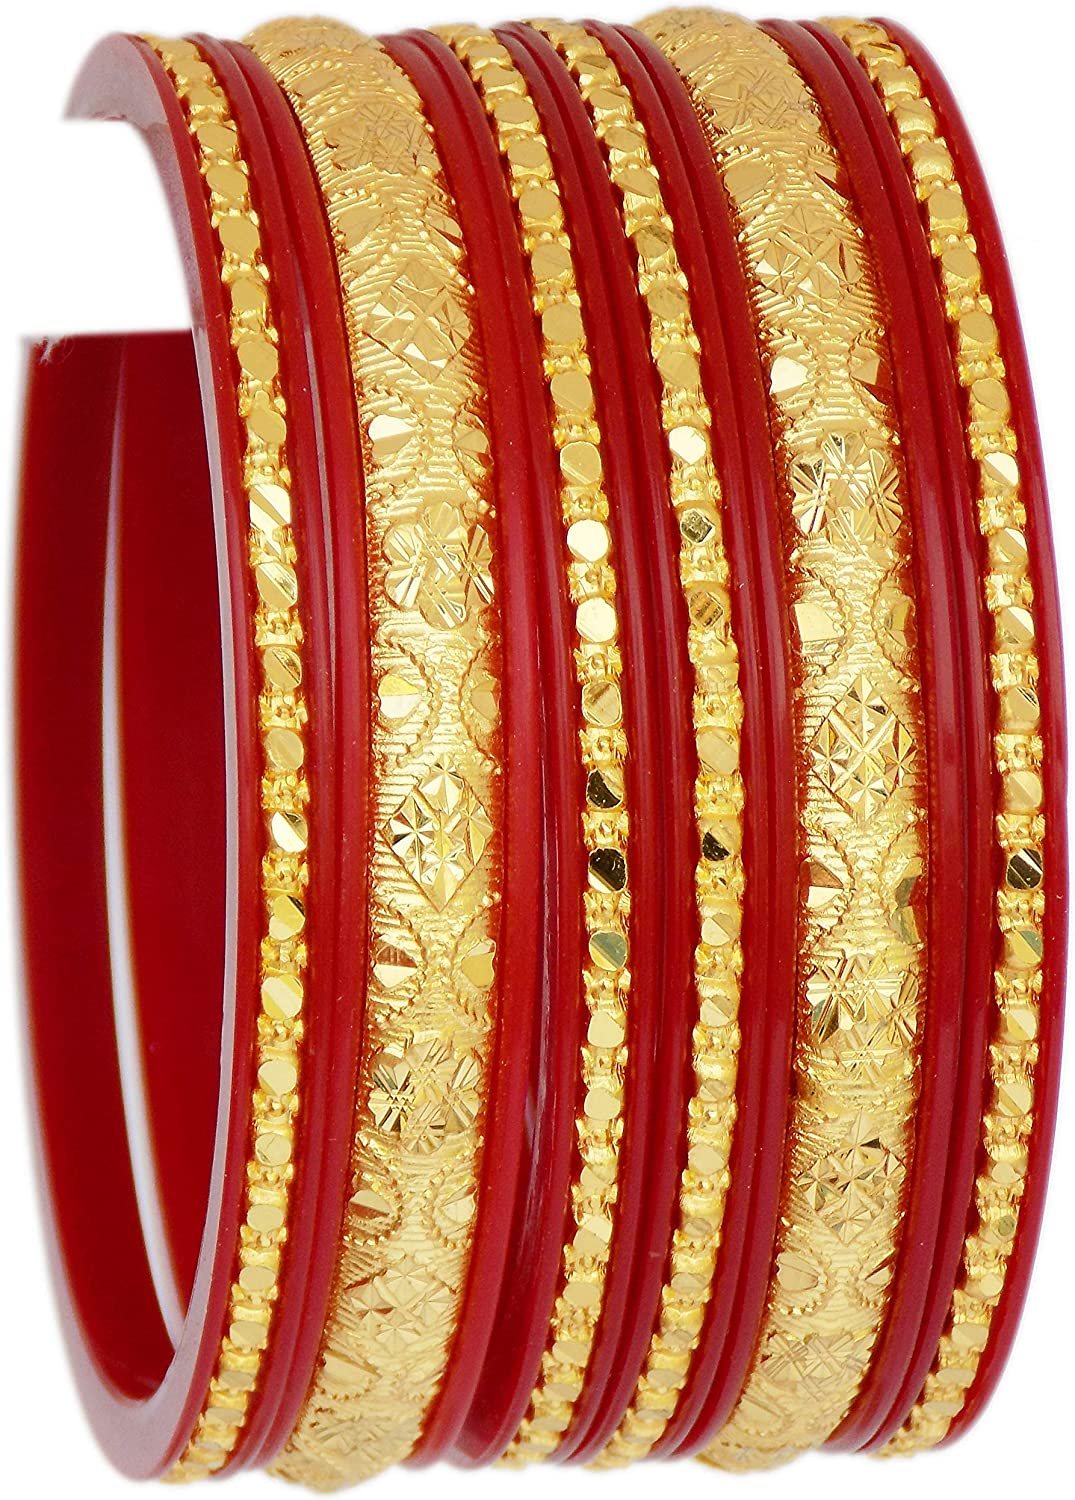 Nippon Store regular agency JD'Z COLLECTION Indian Ethnic Bollywood Bangles Plated Jewe Gold